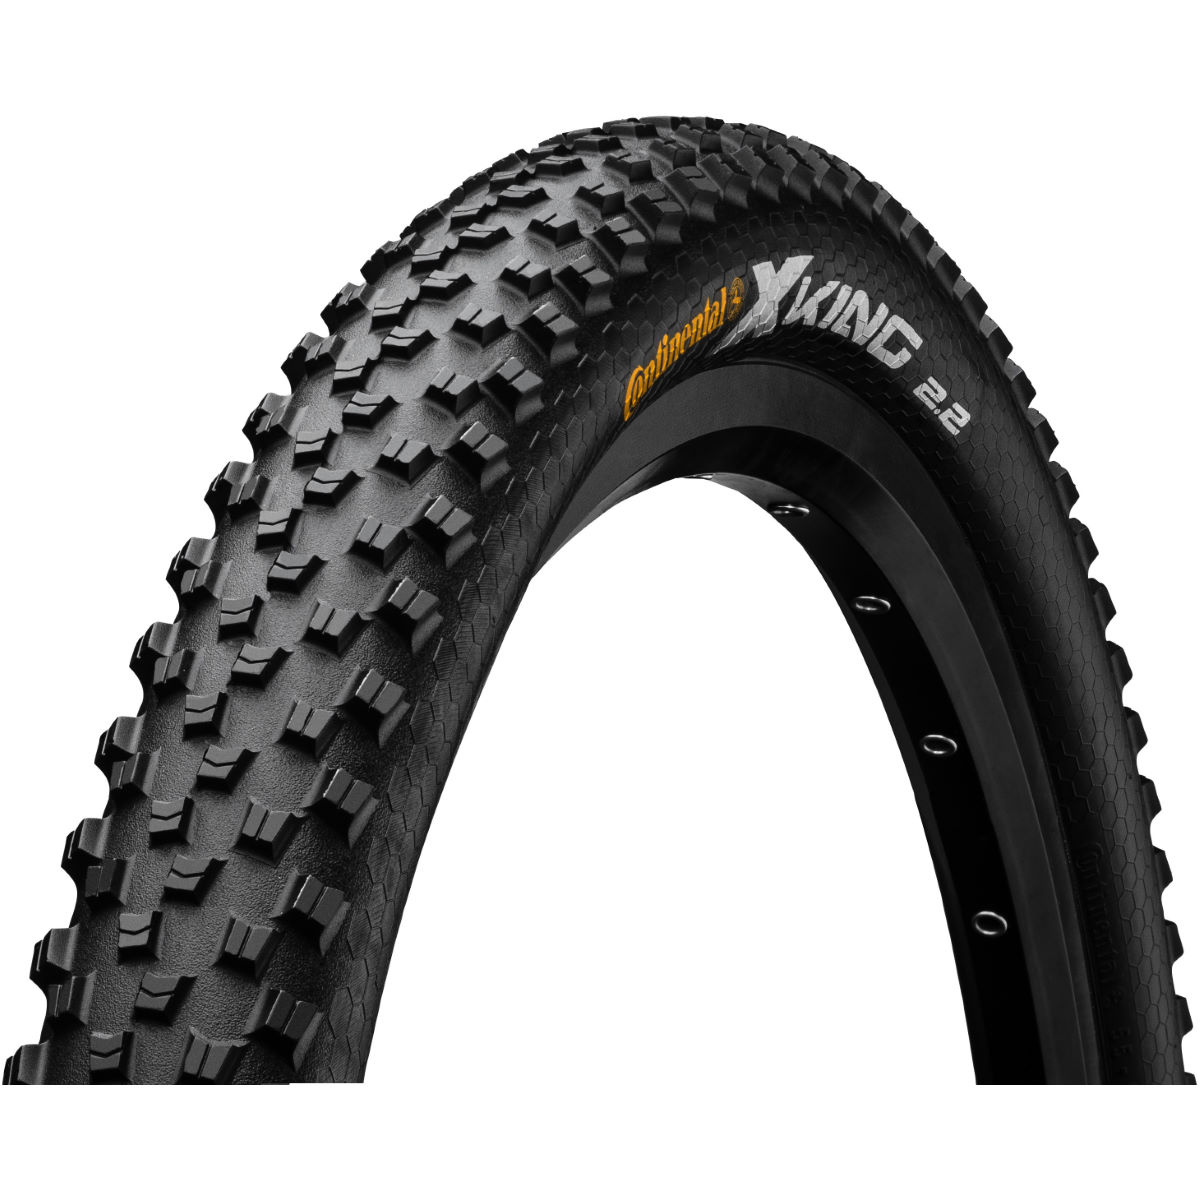 Pneu VTT Continental X King (souple, ProTection, 2018) - 2.2' 26'